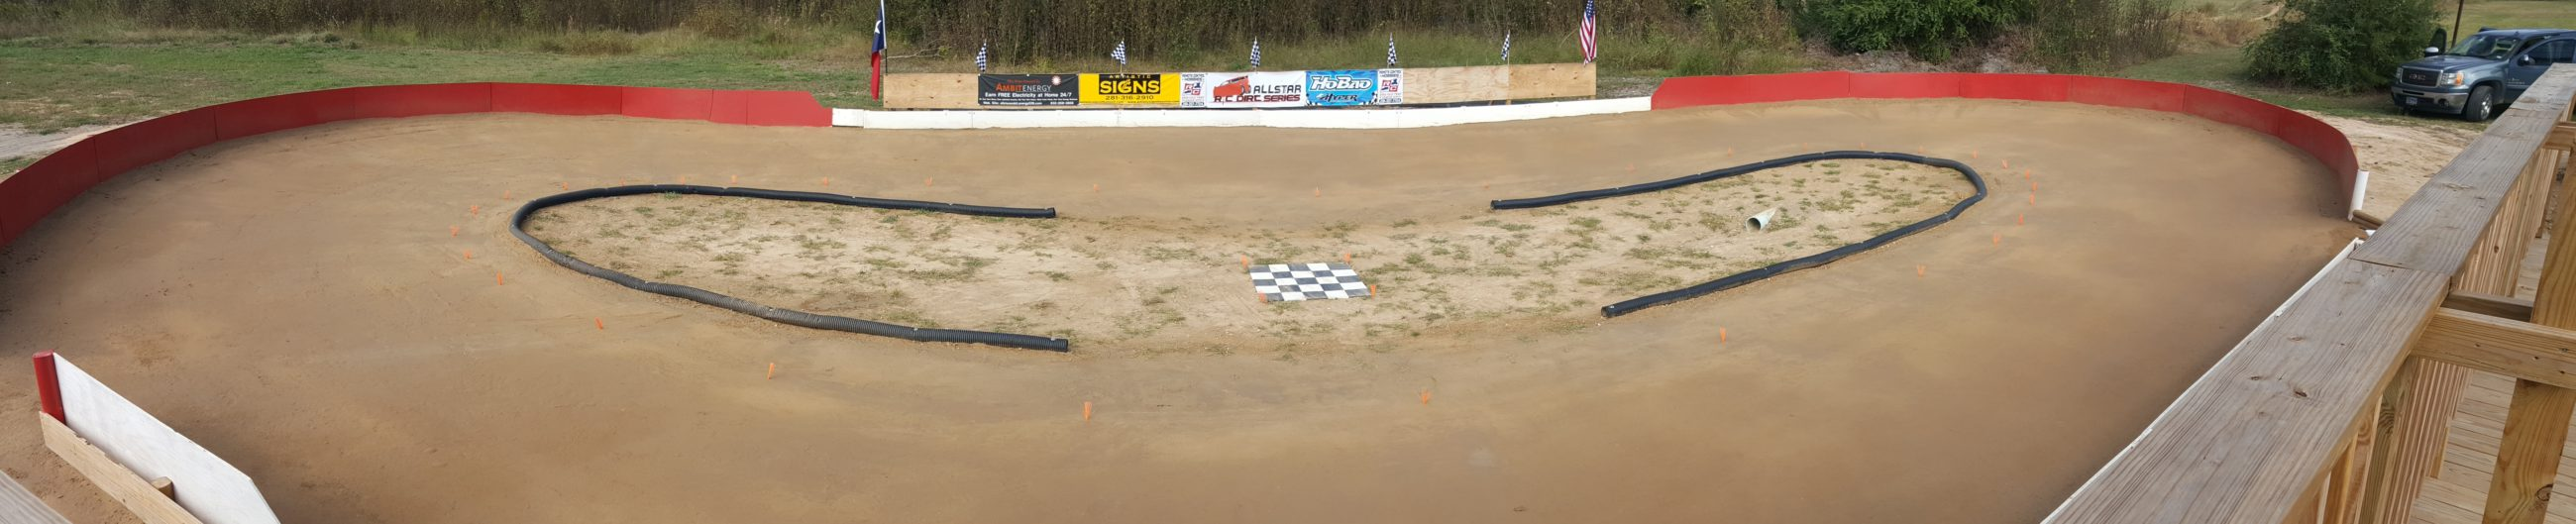 Dirt Oval